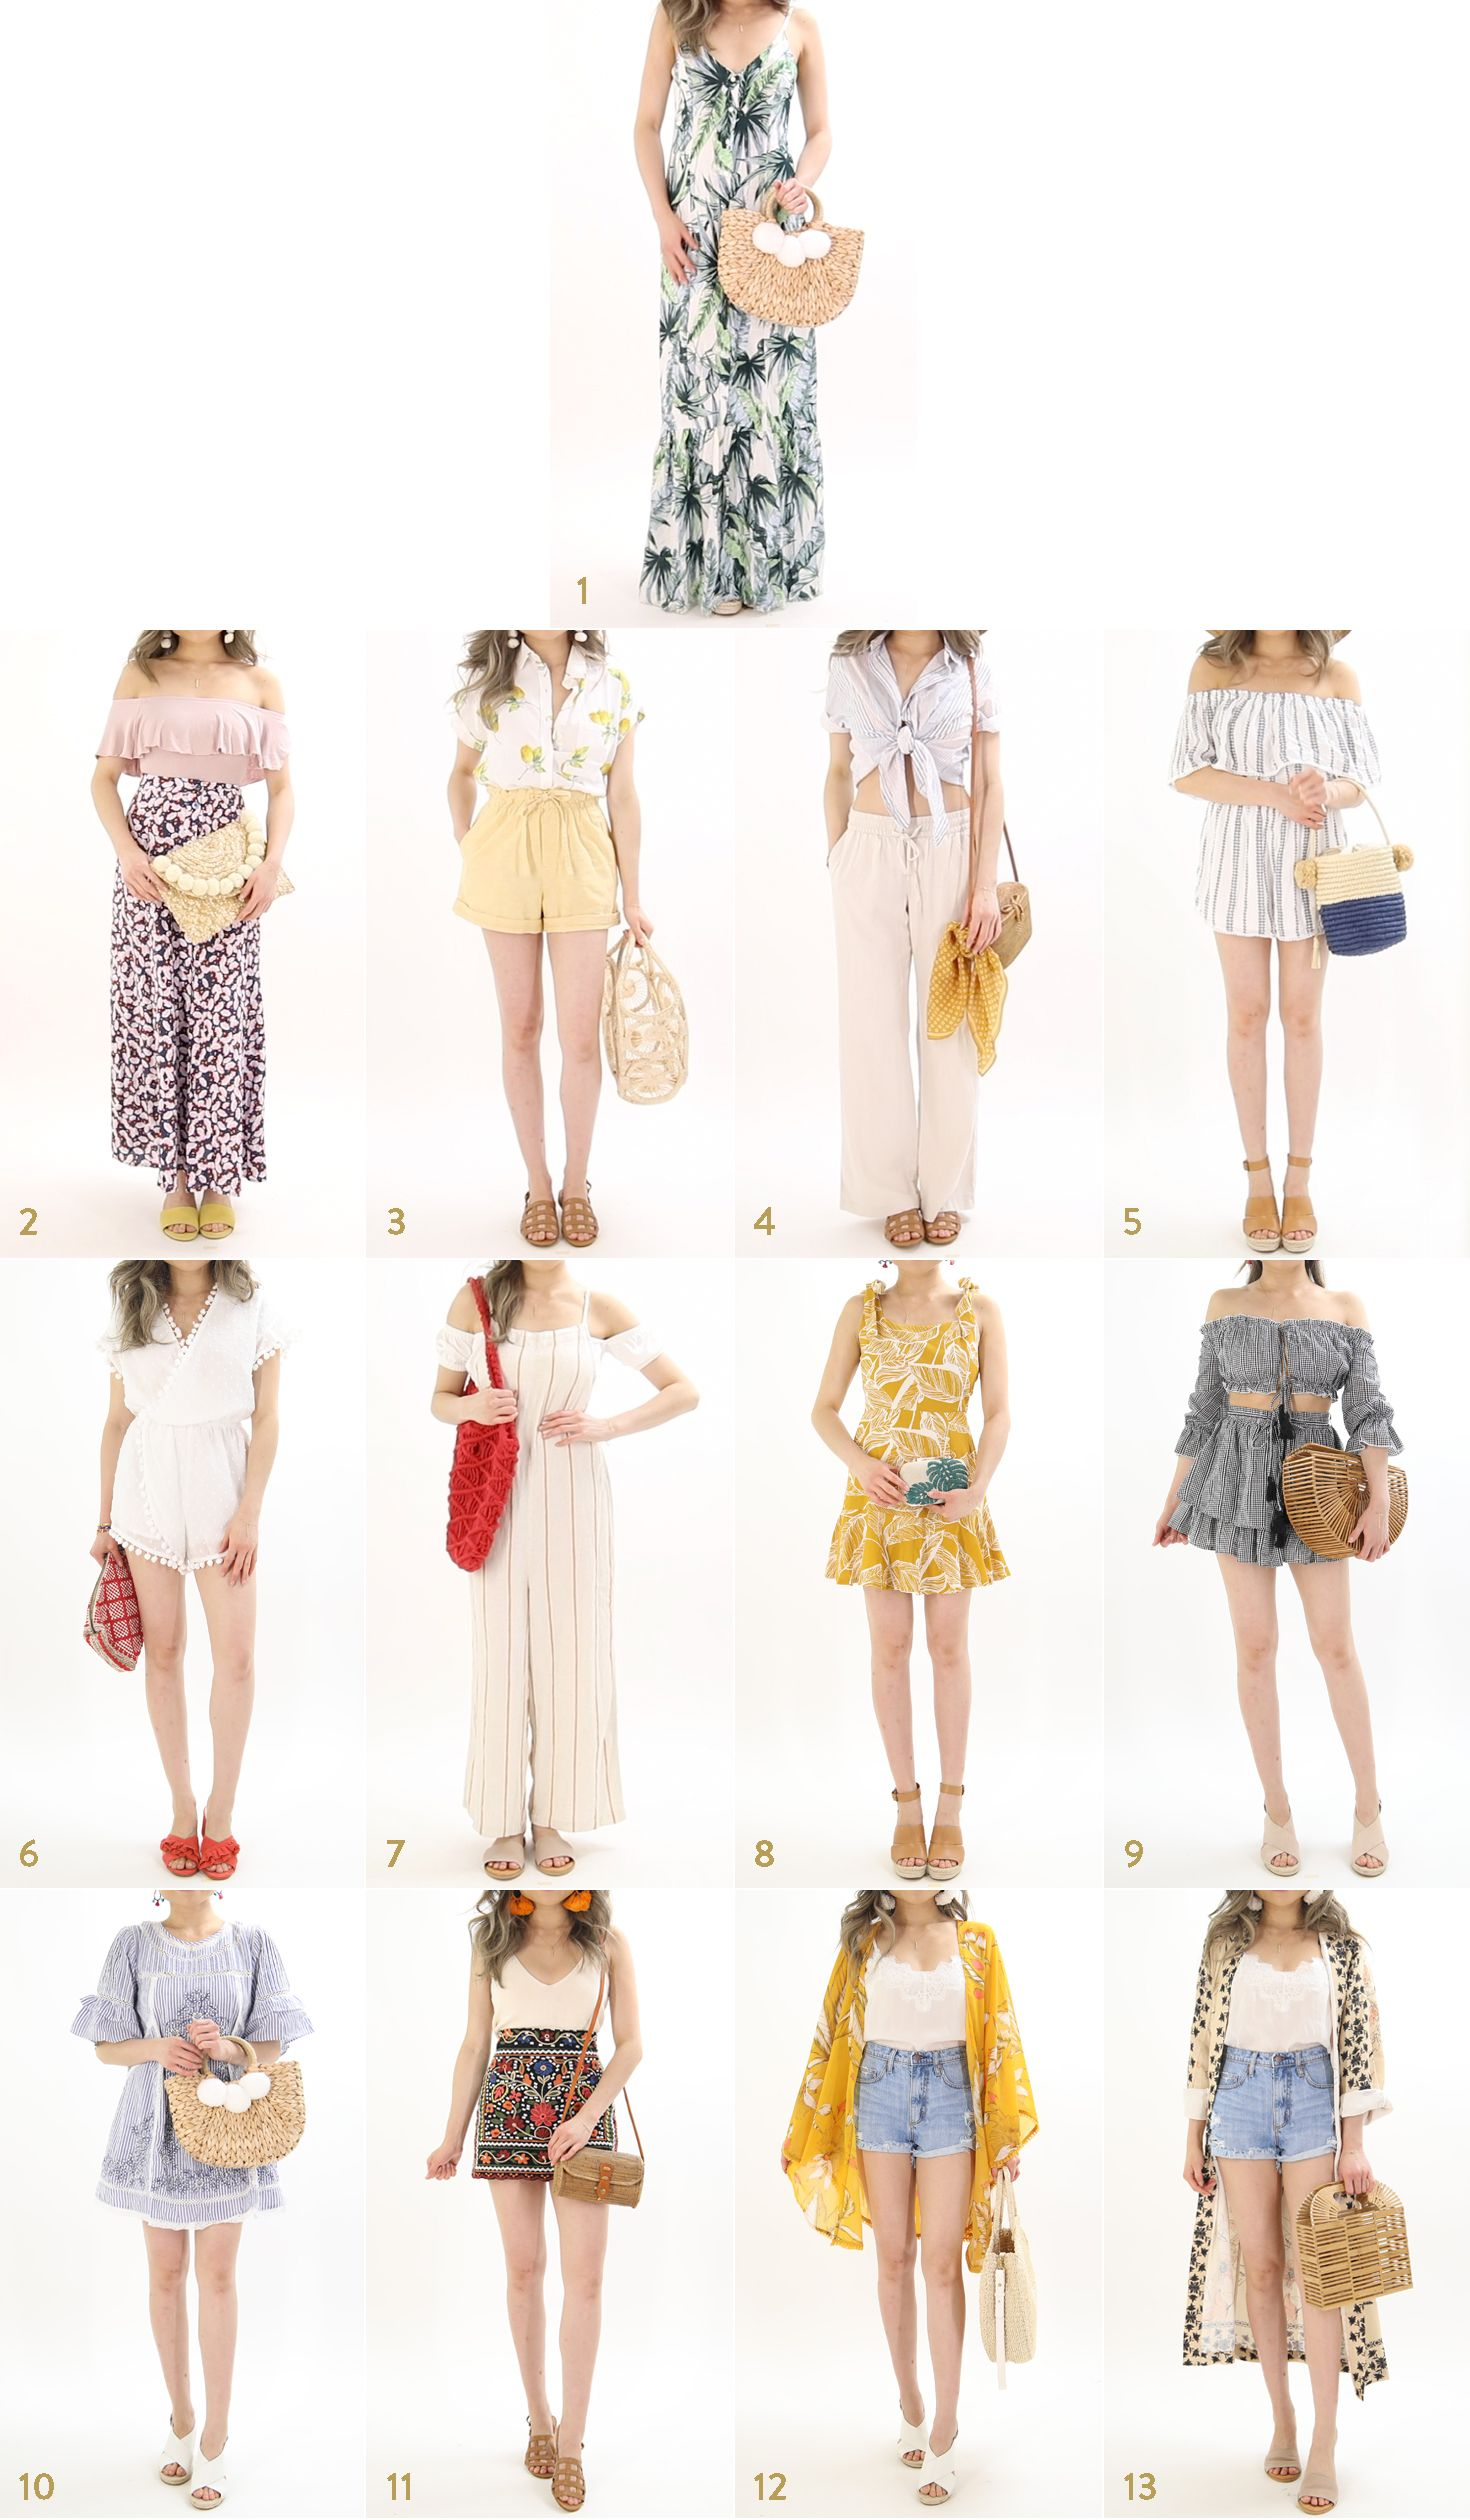 The Ultimate Summer Vacation Outfit Ideas Guide By Miss Louie Summer Fashion Outfits Beach Holiday Outfits Women Holiday Outfits Summer [ 2520 x 1470 Pixel ]